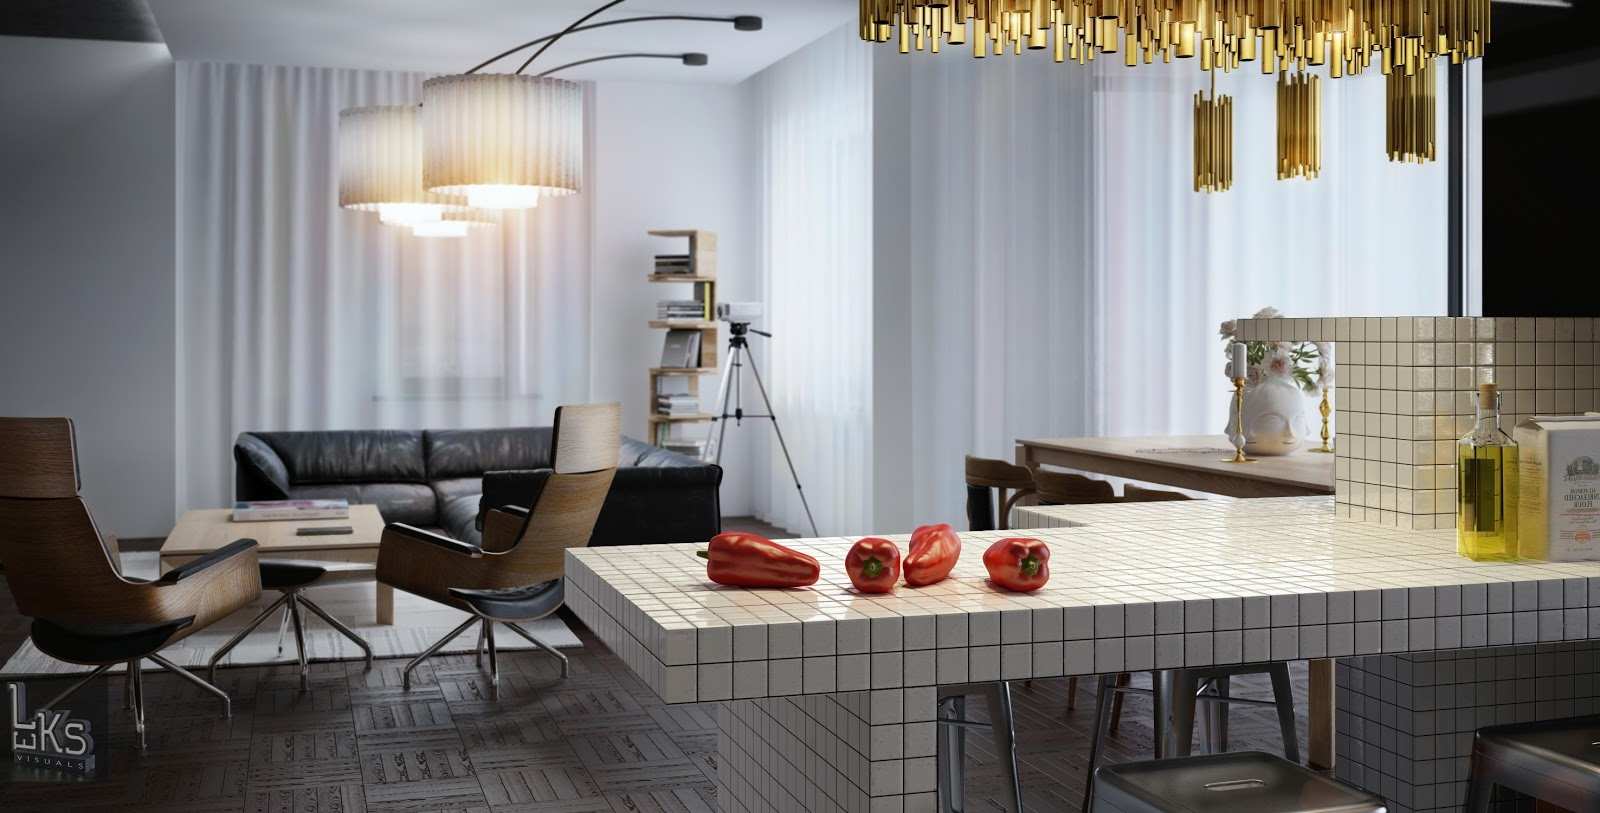 Leks architects kiev apartment view from kitchen servery for Kitchen sitting area